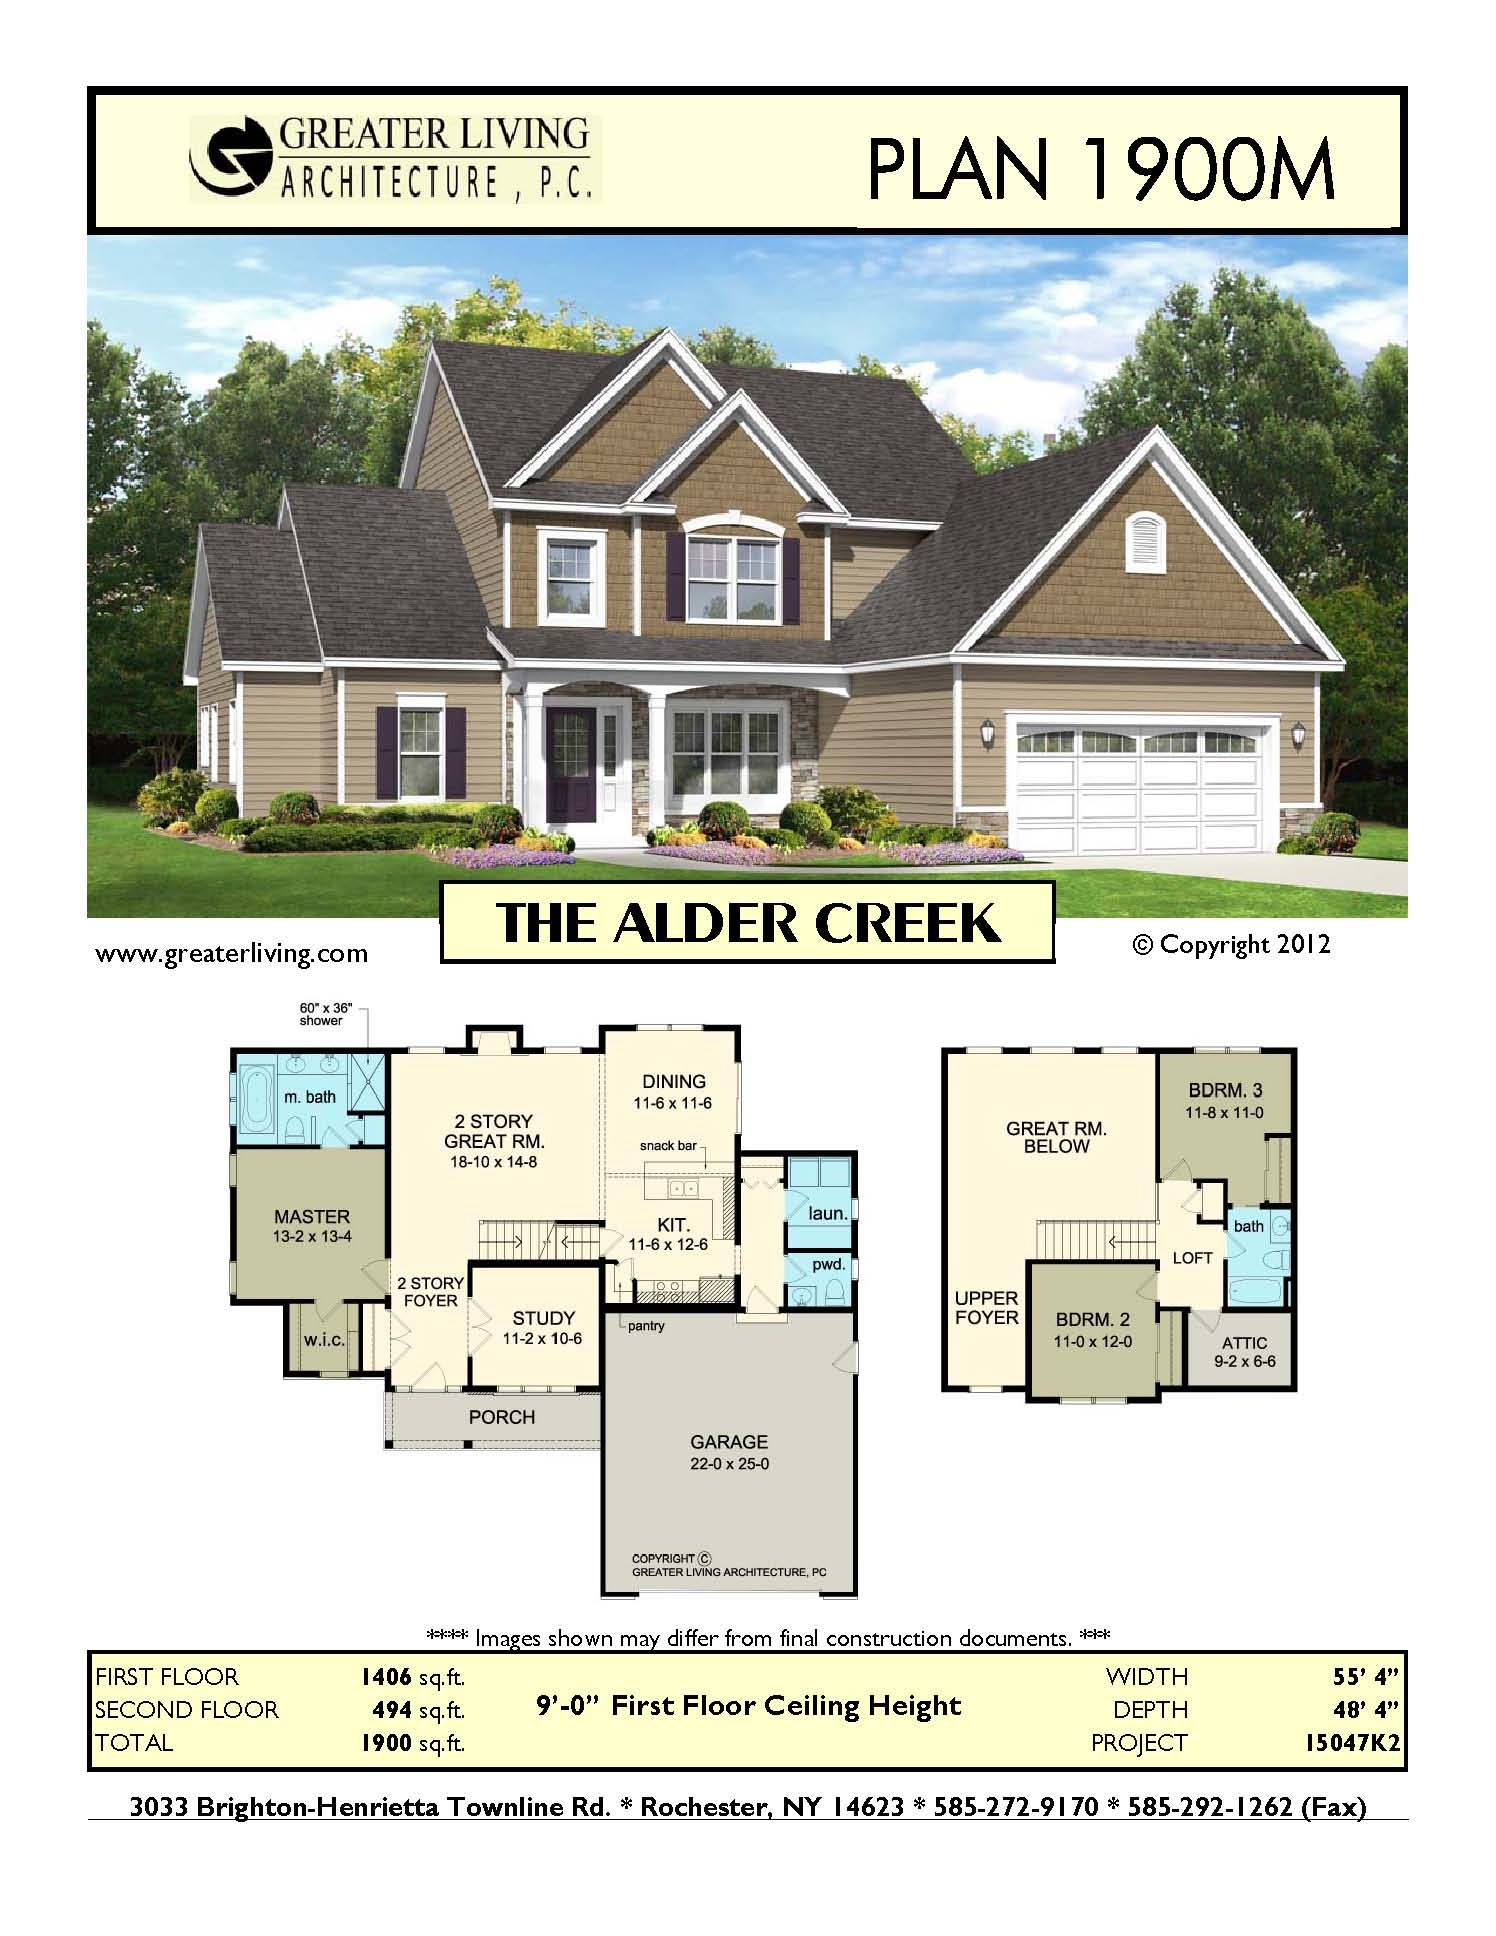 plan 1900m the alder creek house plans two story house plans plan 1900m the alder creek house plans two story house plans 1st